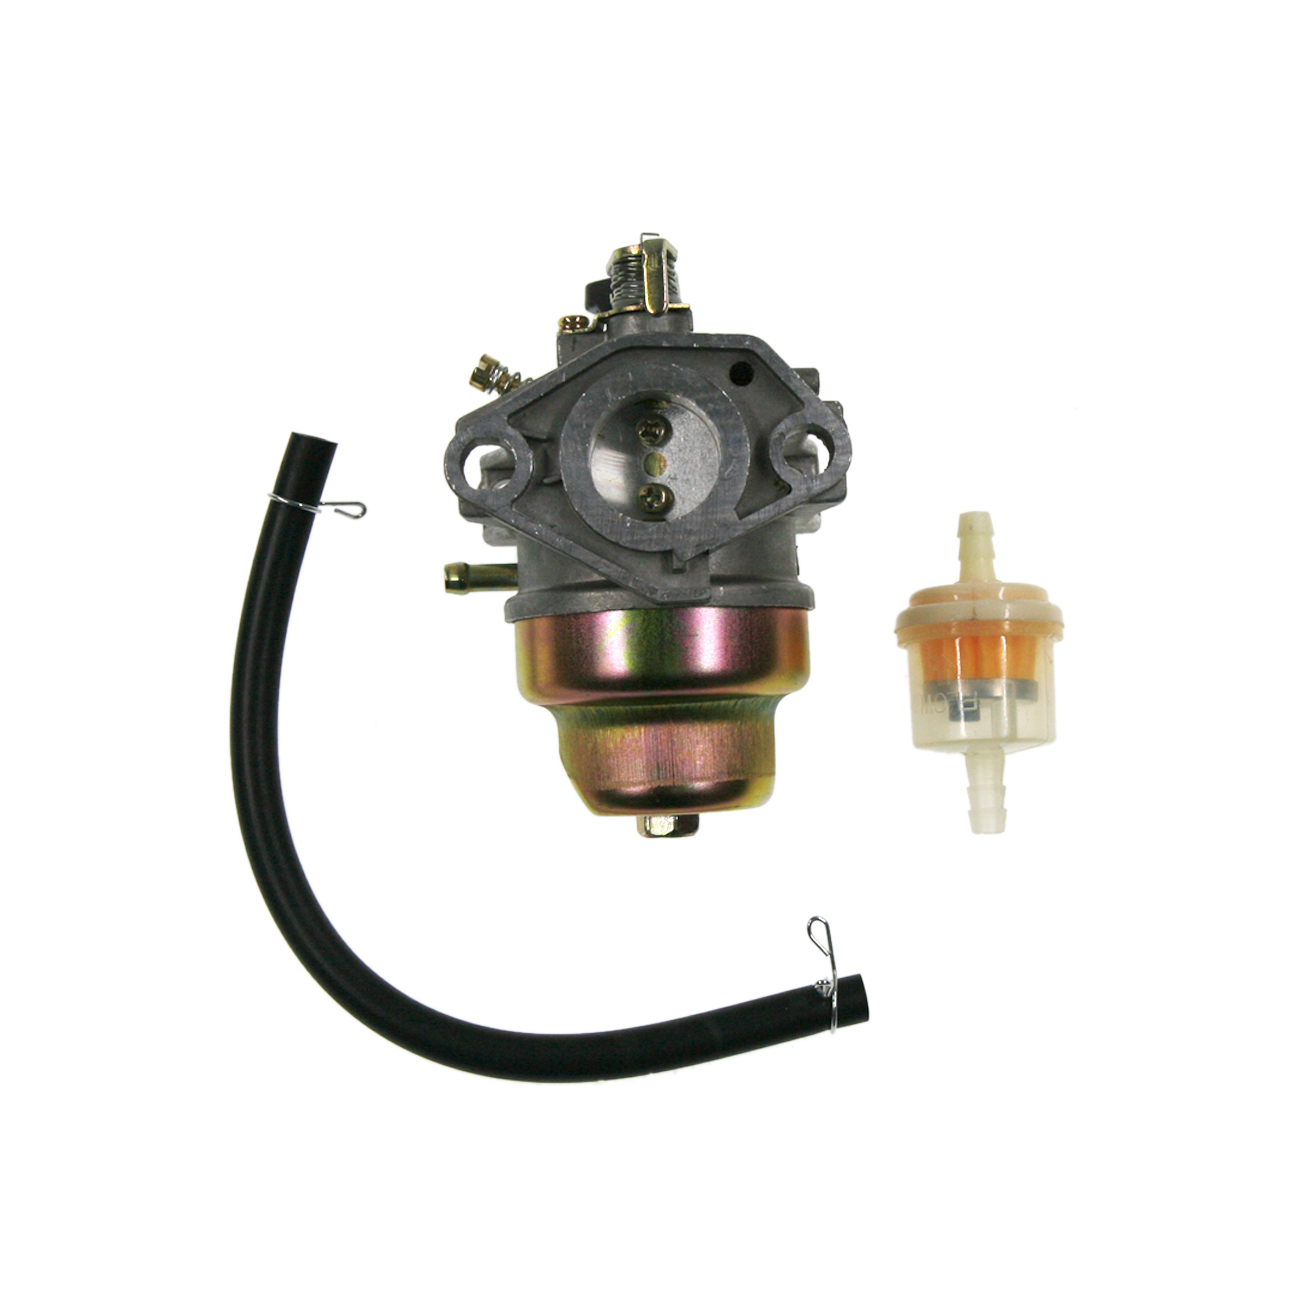 Carburetor Carb Fits <font><b>Honda</b></font> <font><b>G300</b></font> 7hp Engines Part 16100-889-663 image